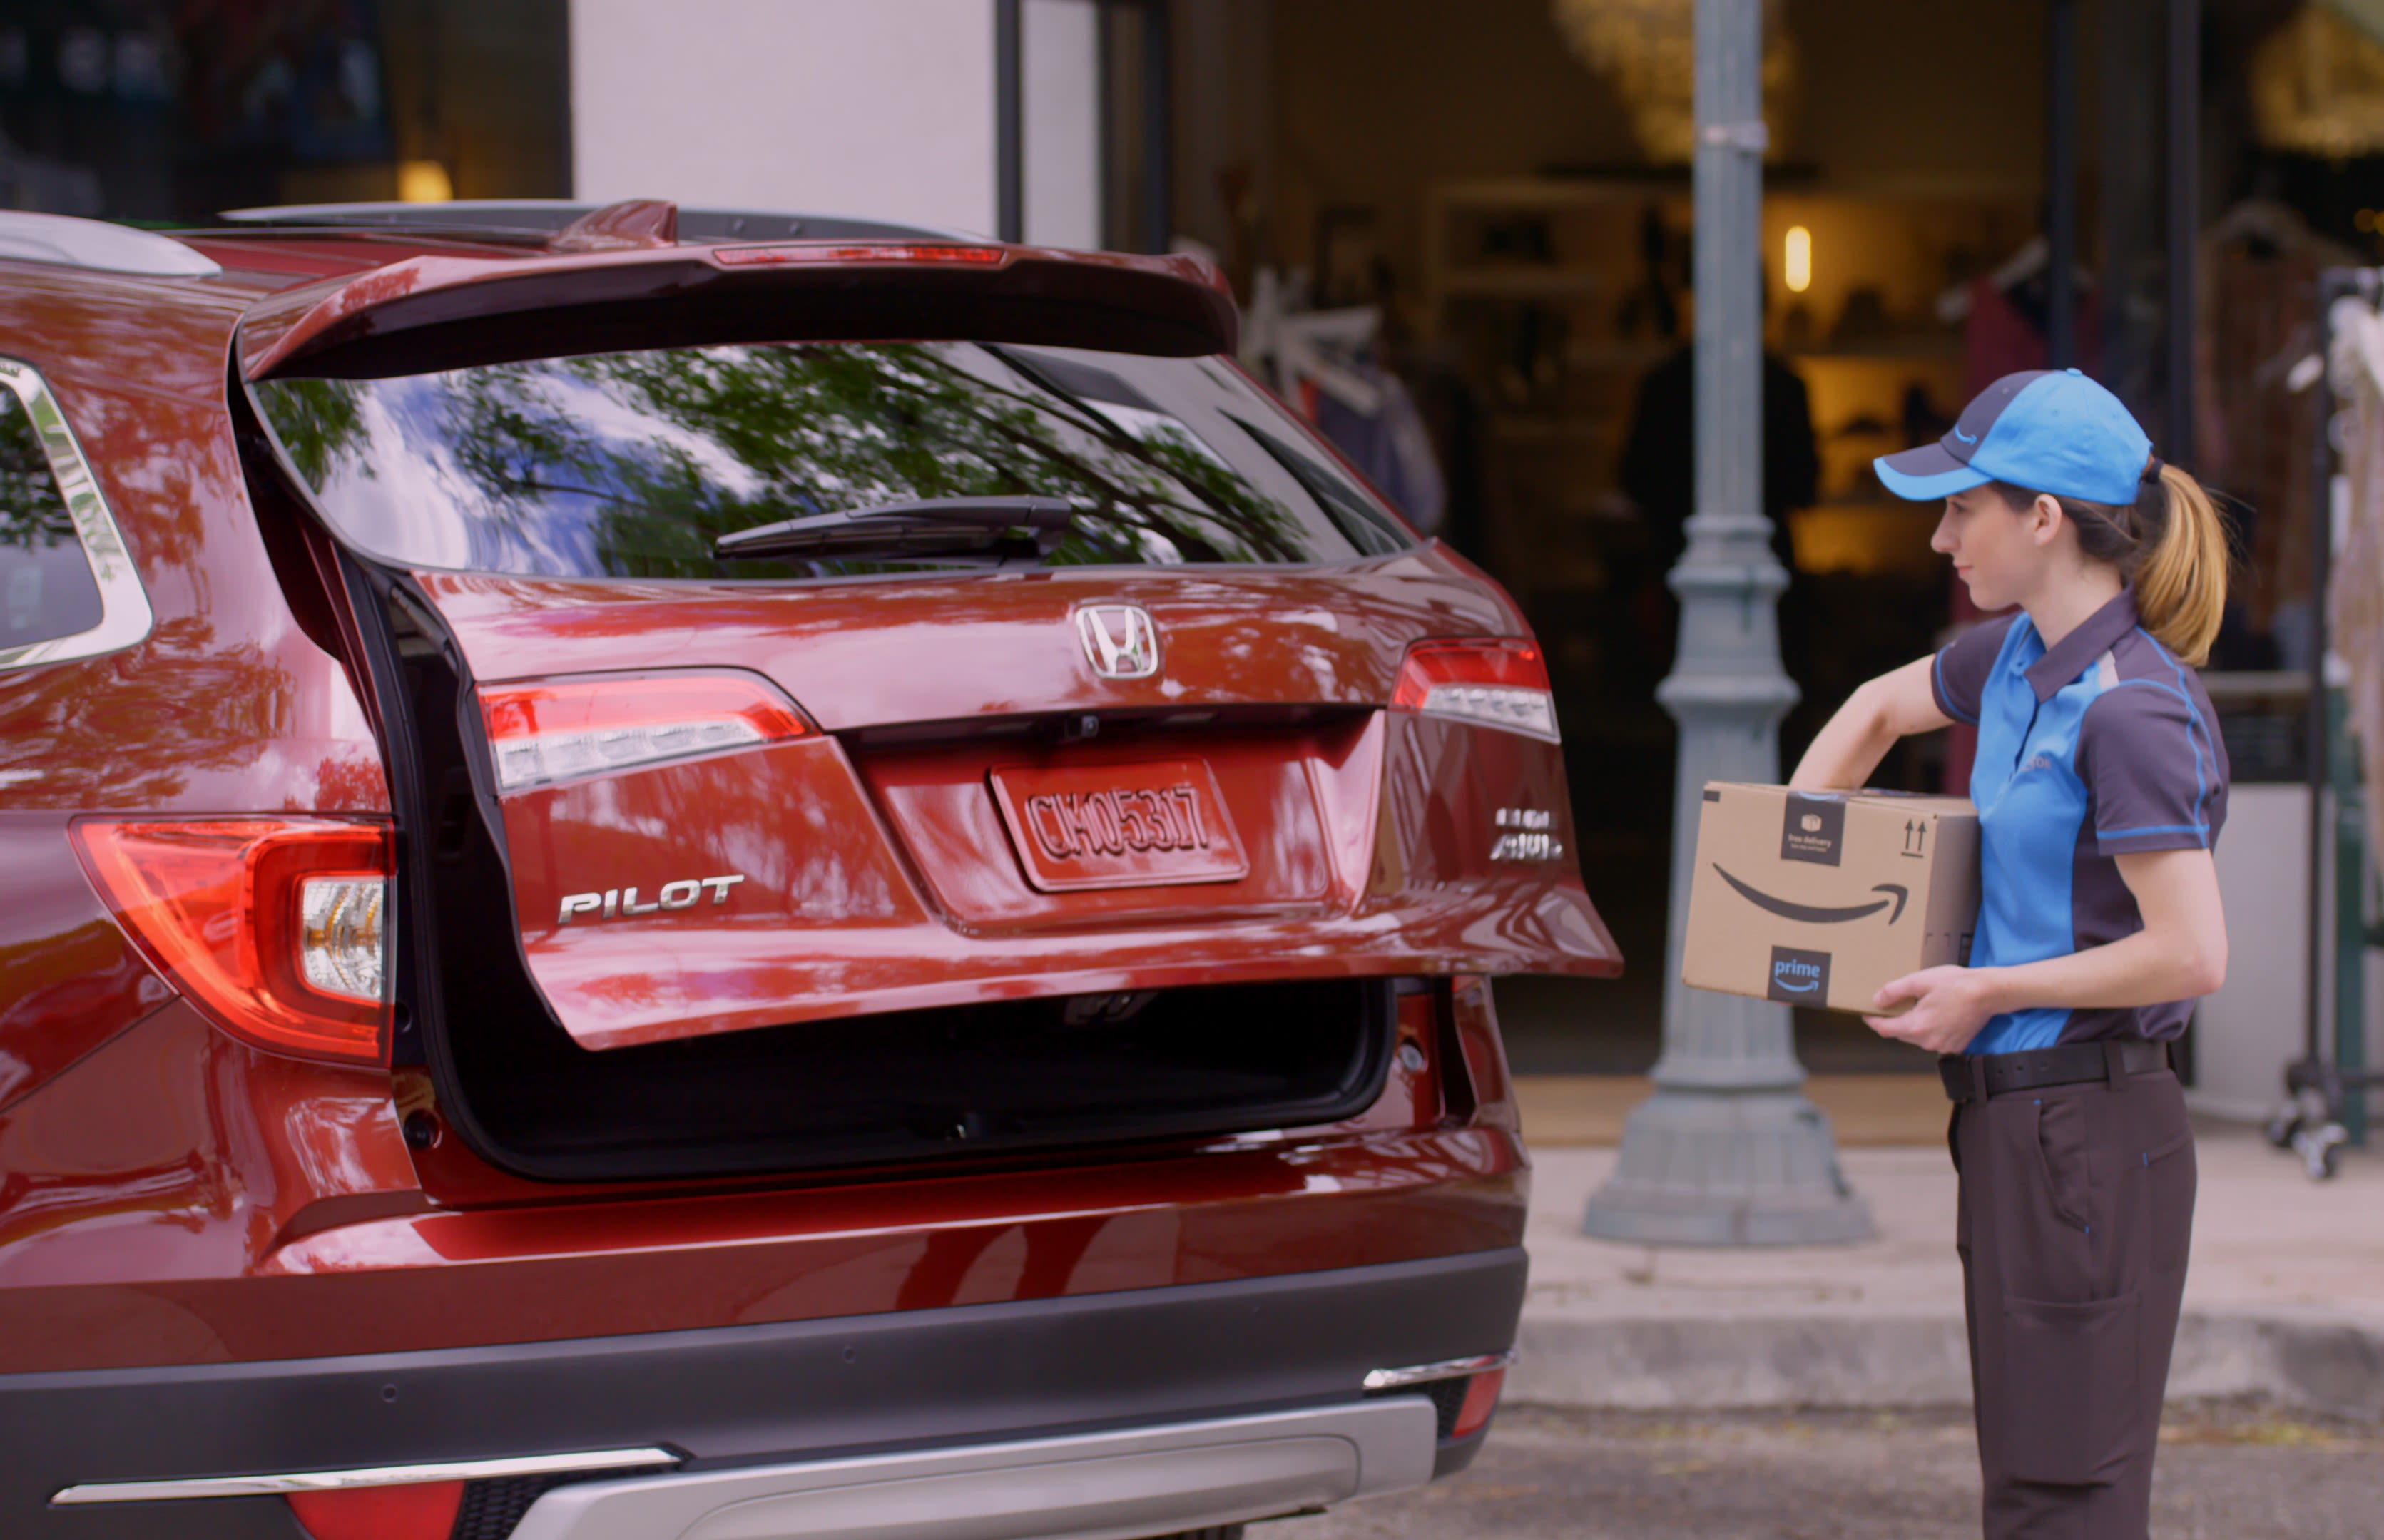 Honda drivers can now get Amazon parcels delivered to trunk of car